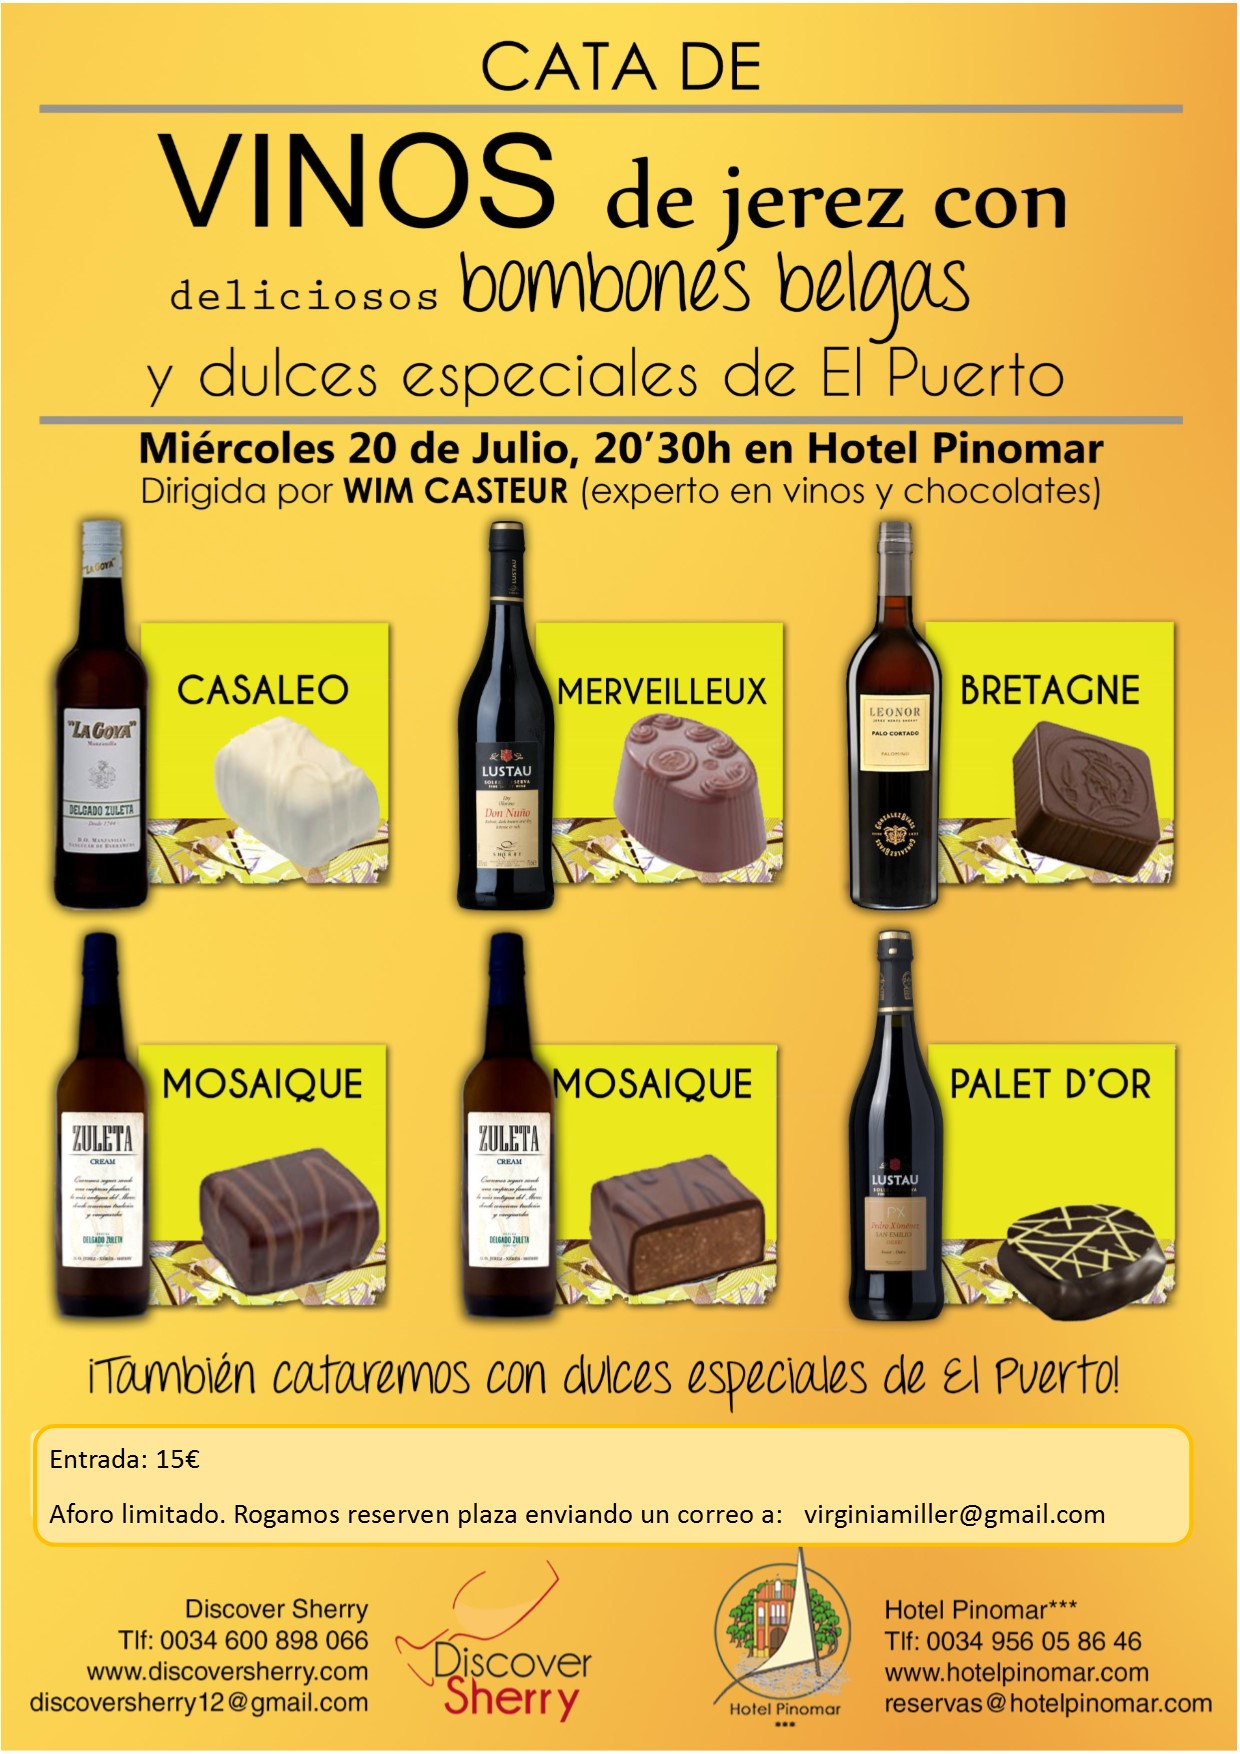 Discover Sherry presenta la II Cata de bombones y vinos del Marco de Jerez / Discover Sherry presents the 2nd Tasting and Pairing of Chocolates and SherryWines